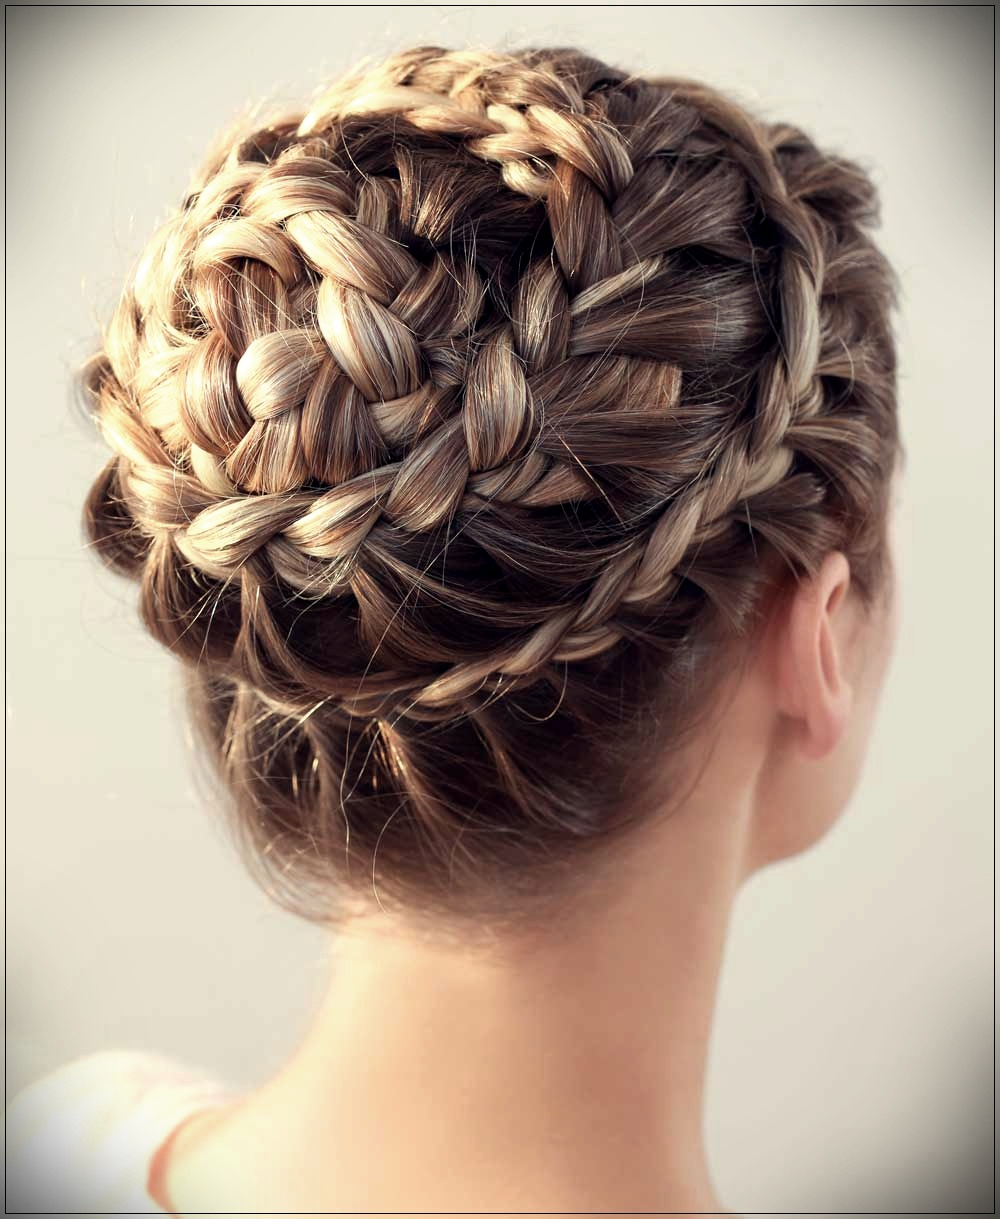 Hairstyles For Long Hair Easy Ideas And Fast